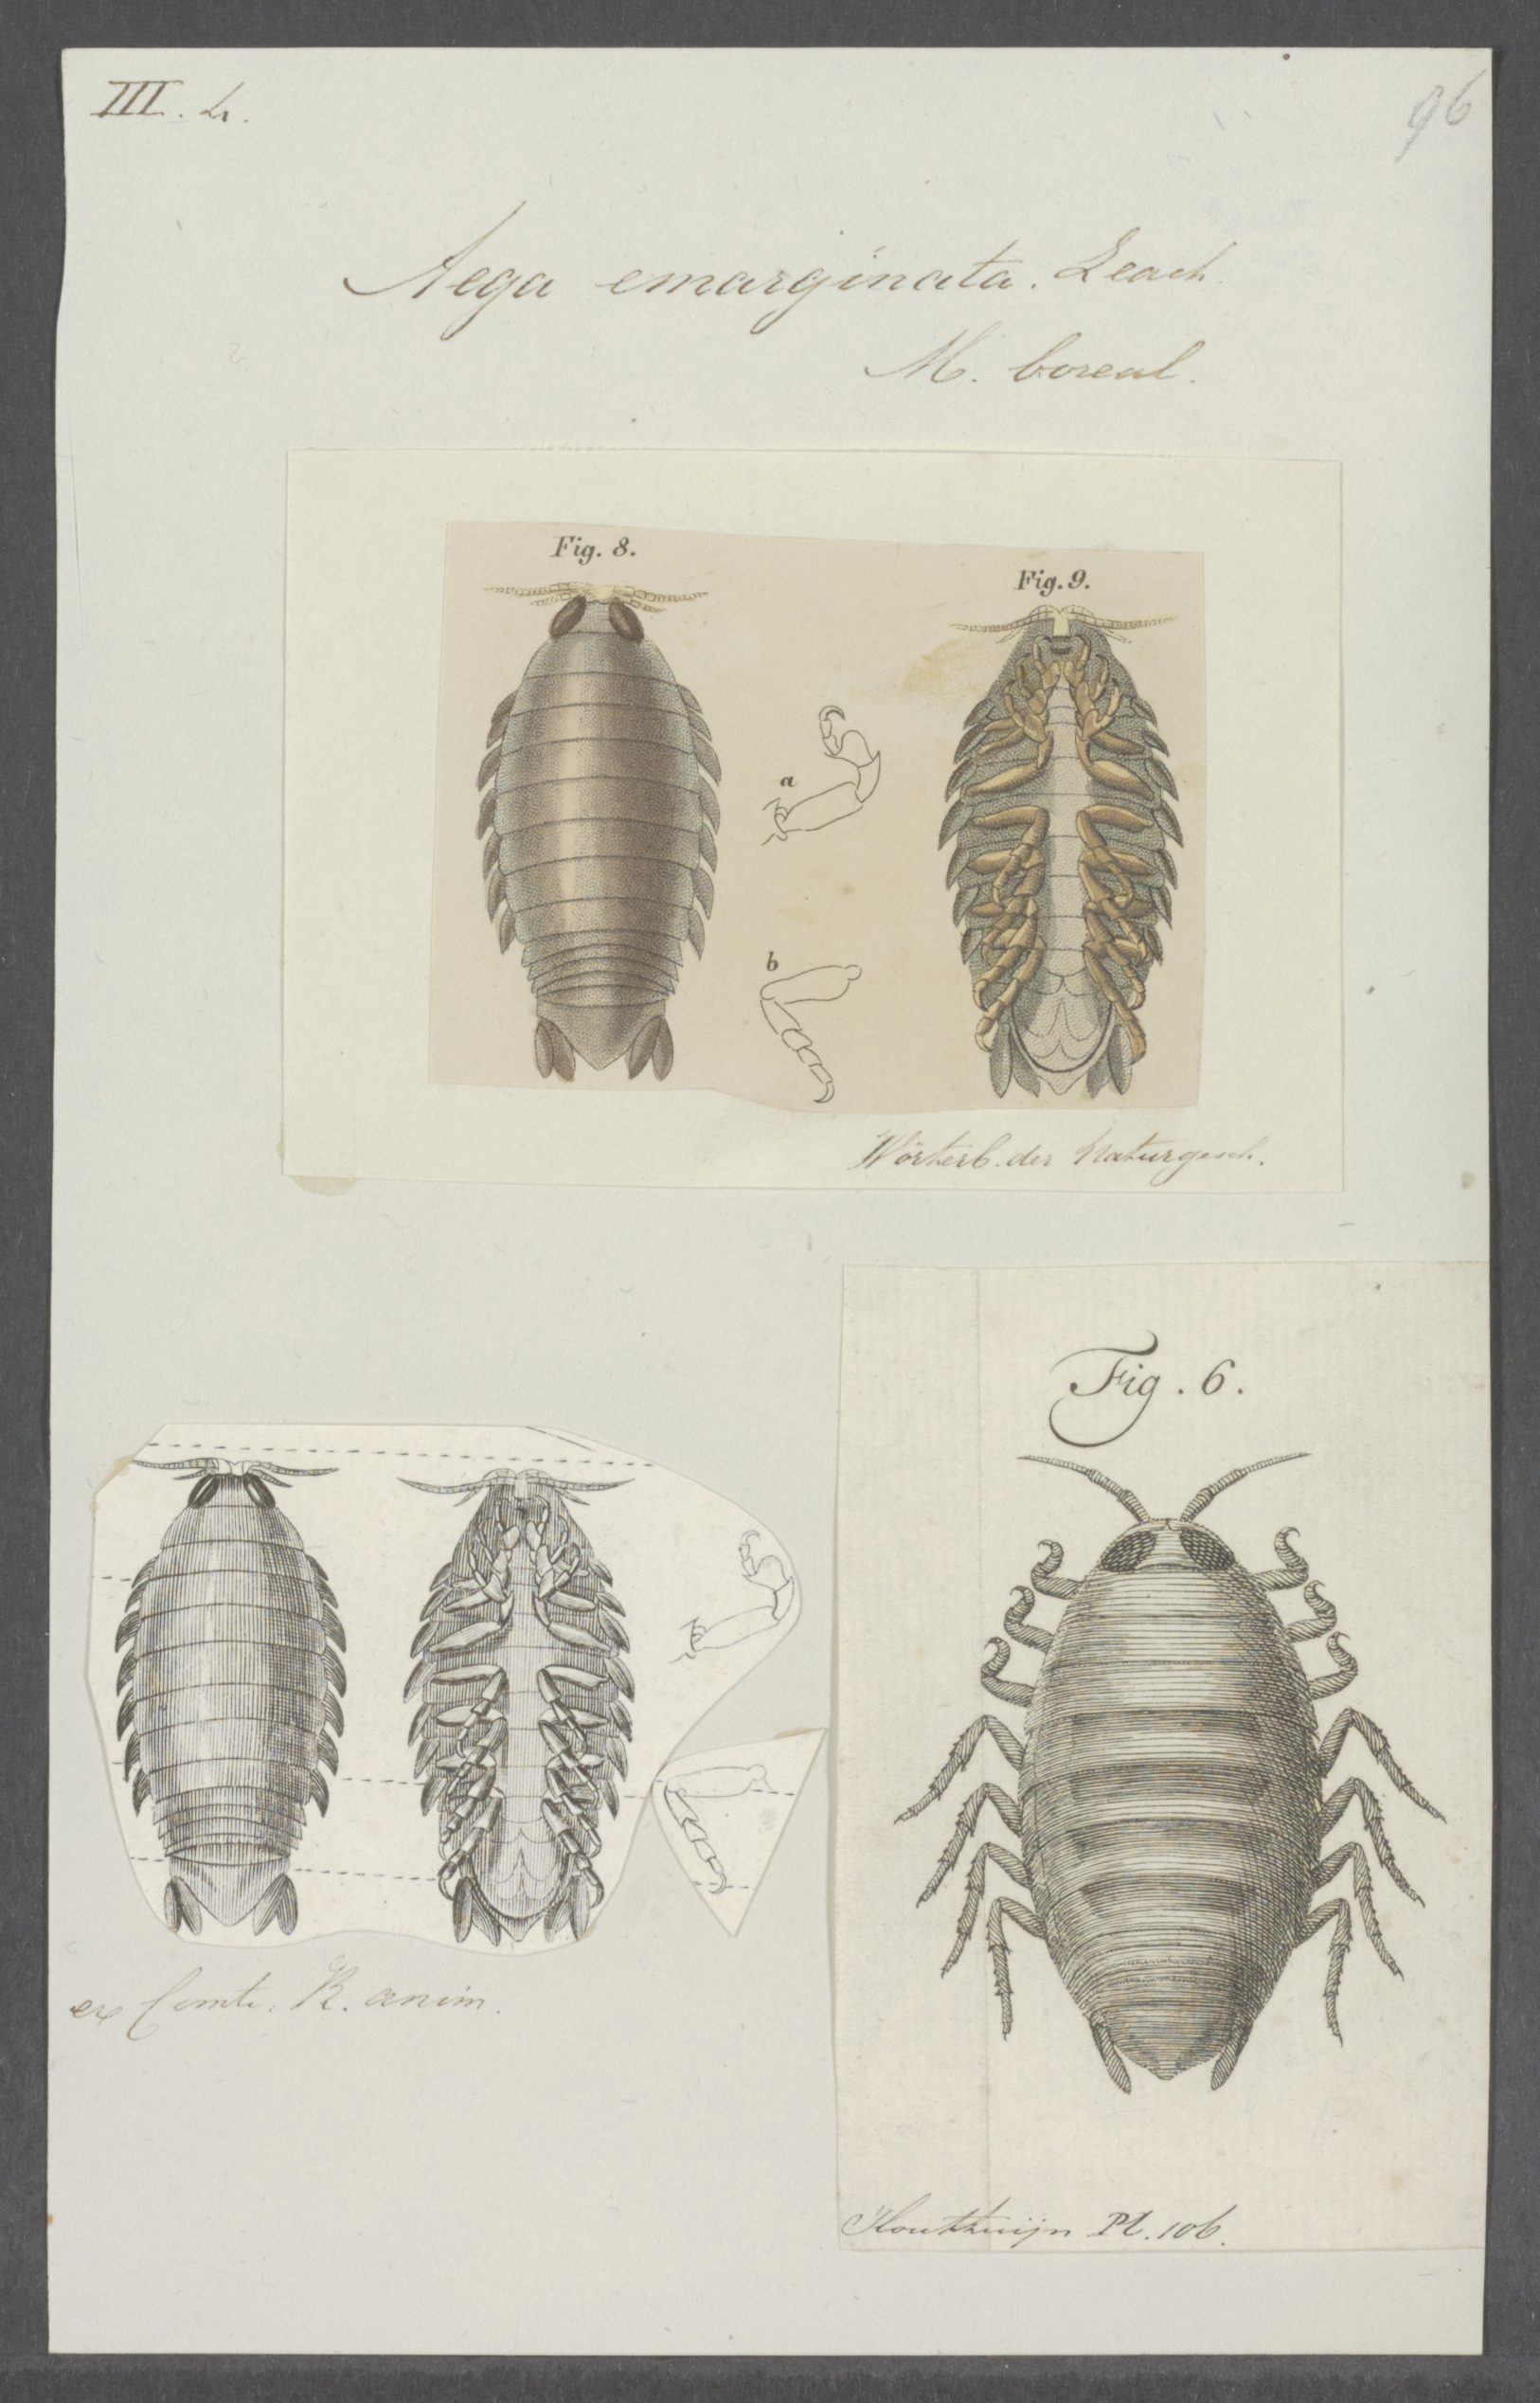 Image of fish louse